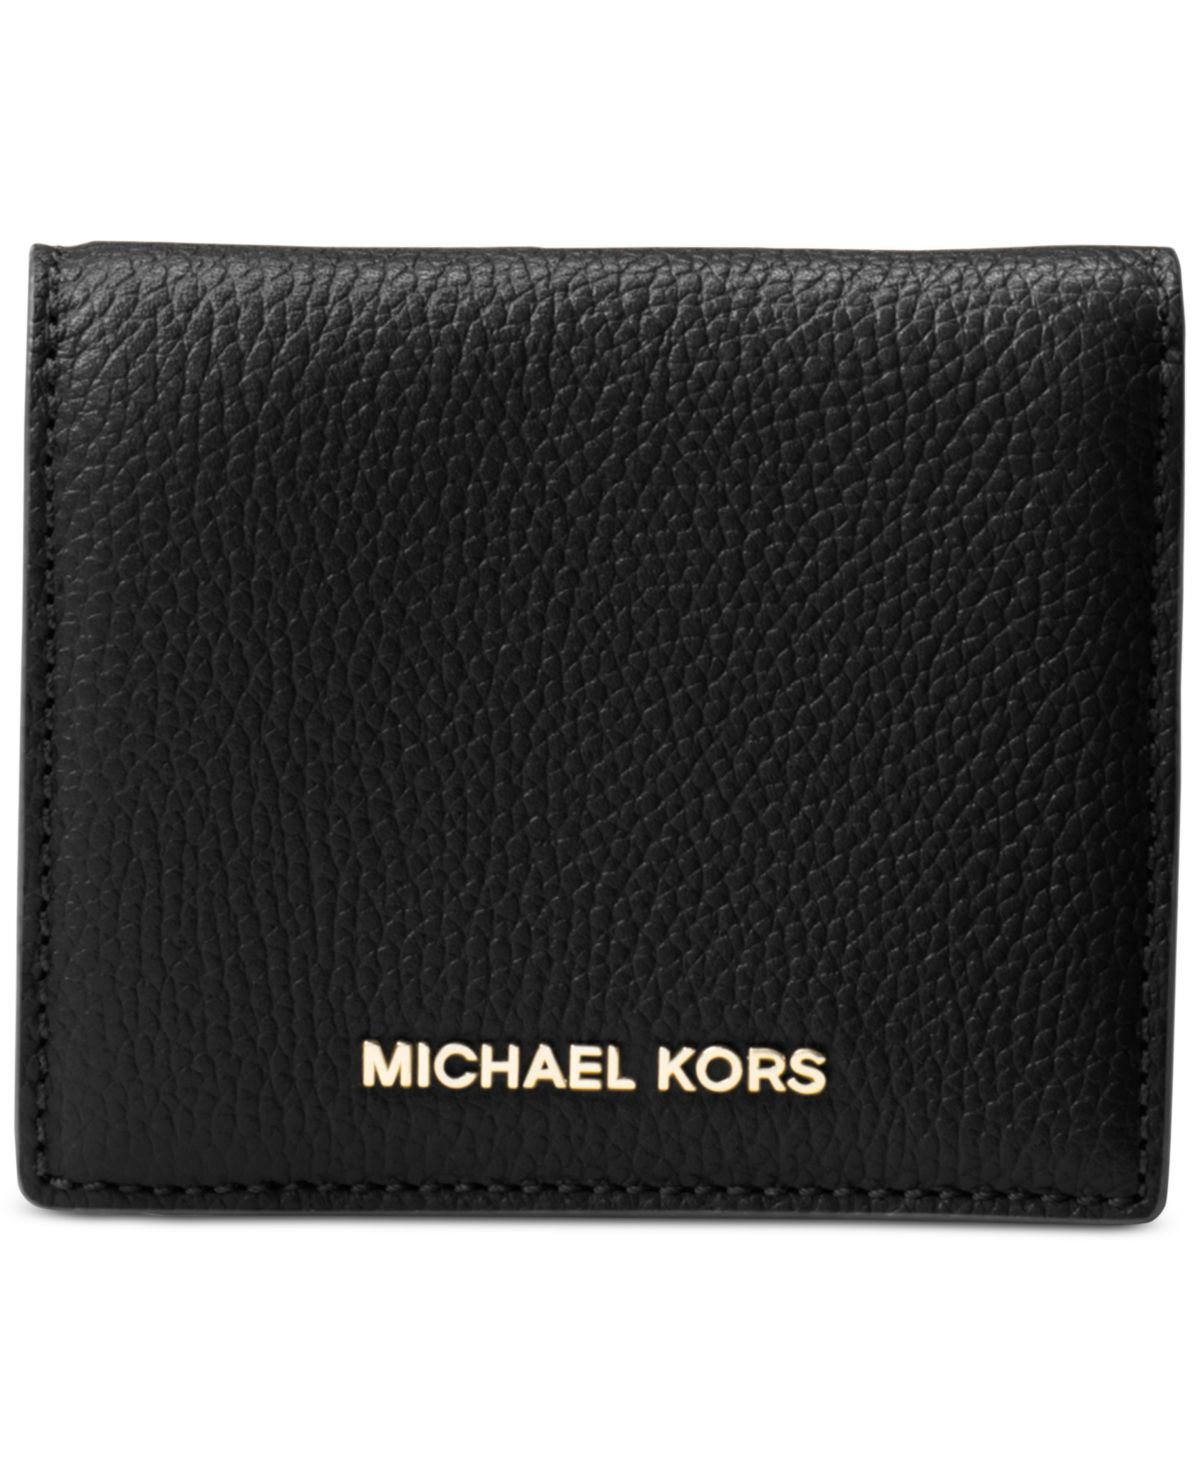 MICHAEL Michael Kors Women's Money Pieces Flap Card Holder, Black, One Size by Michael Kors